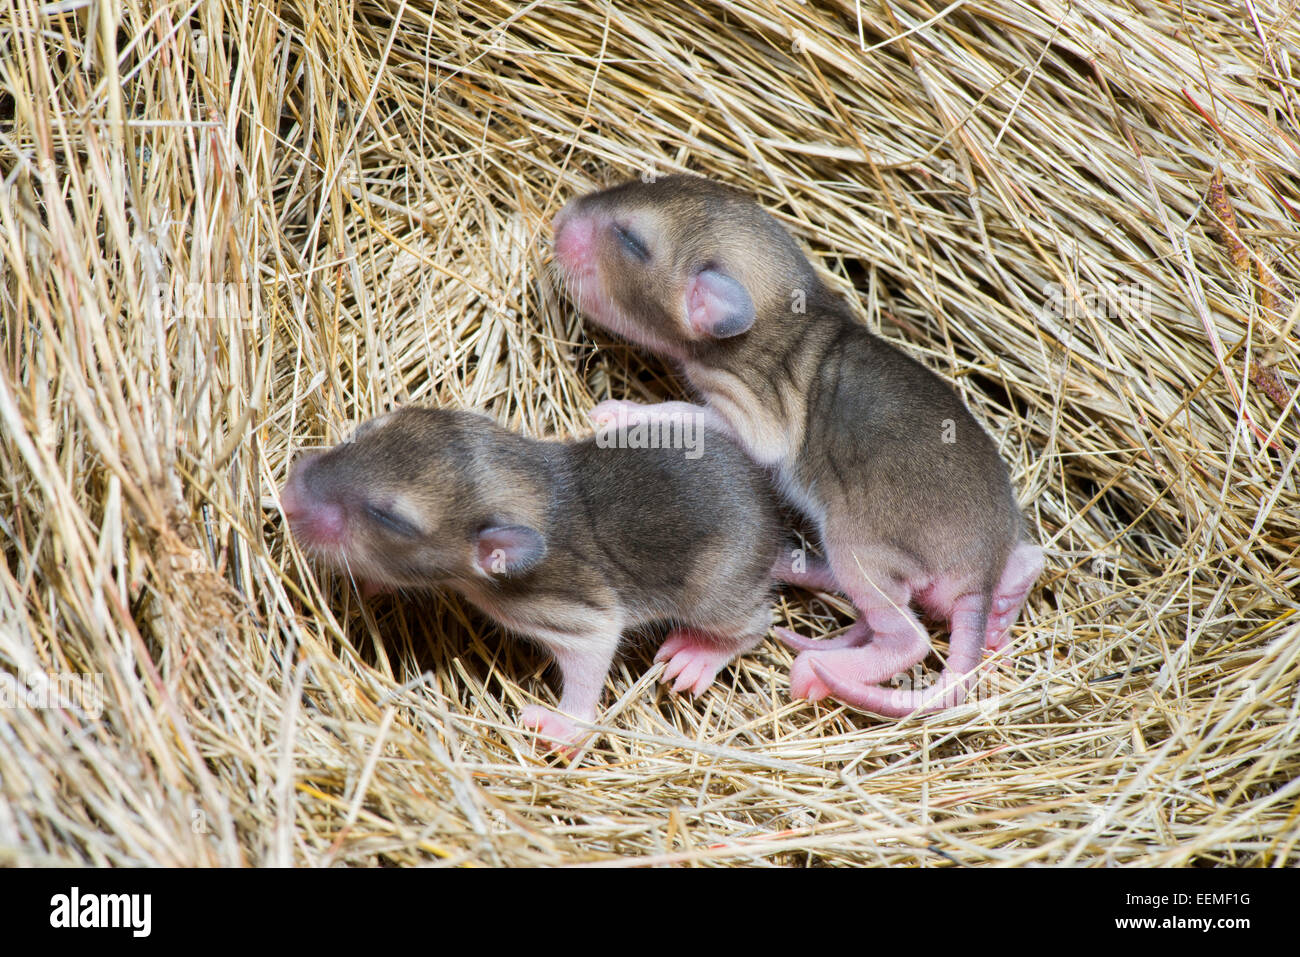 White-throated Woodrat  Neotoma albigula Tucson, Pima County, Arizona, United States 10 Janaury        Immatures - Stock Image